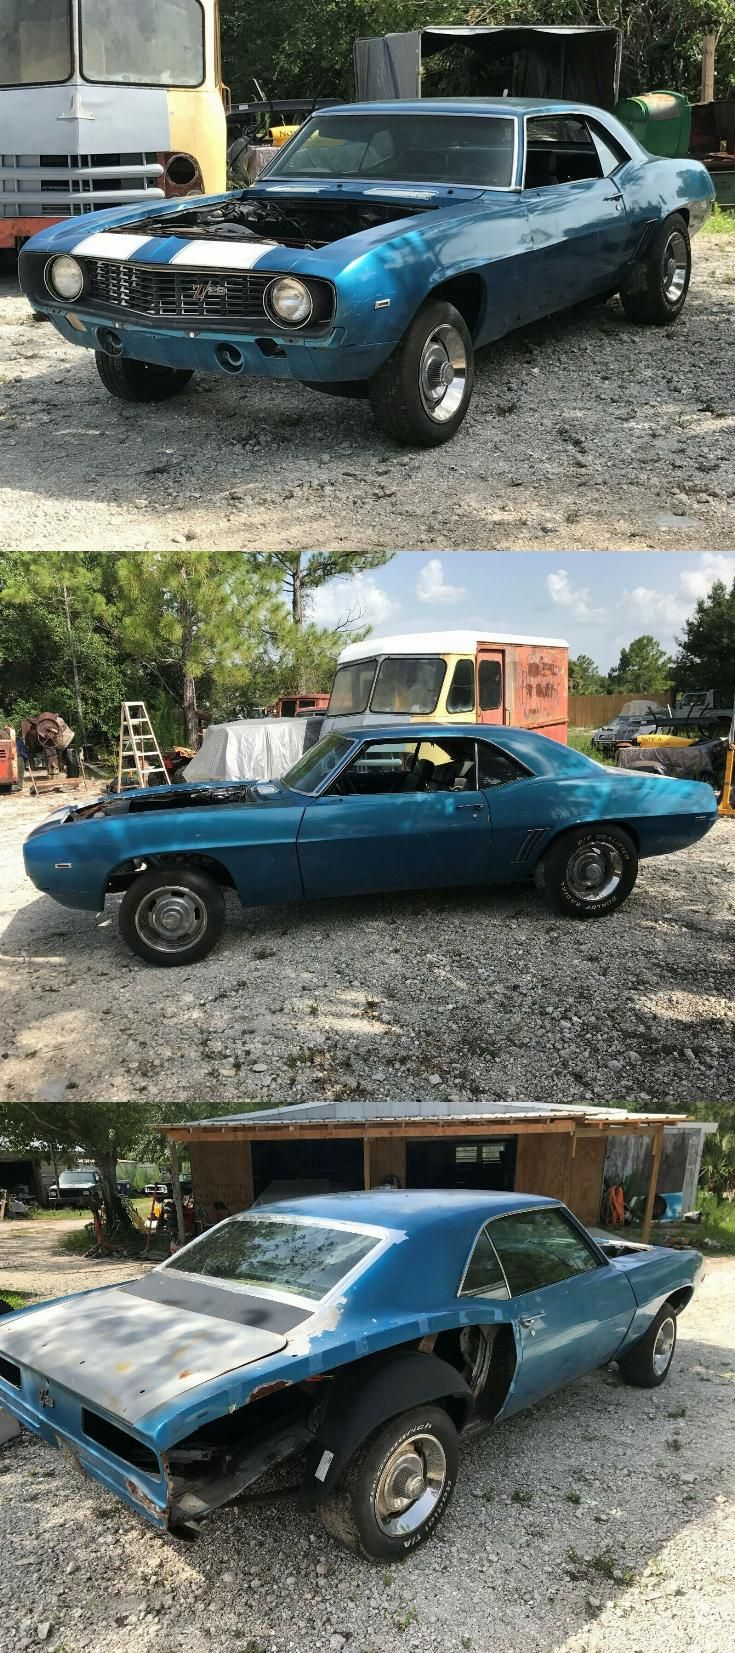 1969 Camaro Project Car For Sale : camaro, project, Project